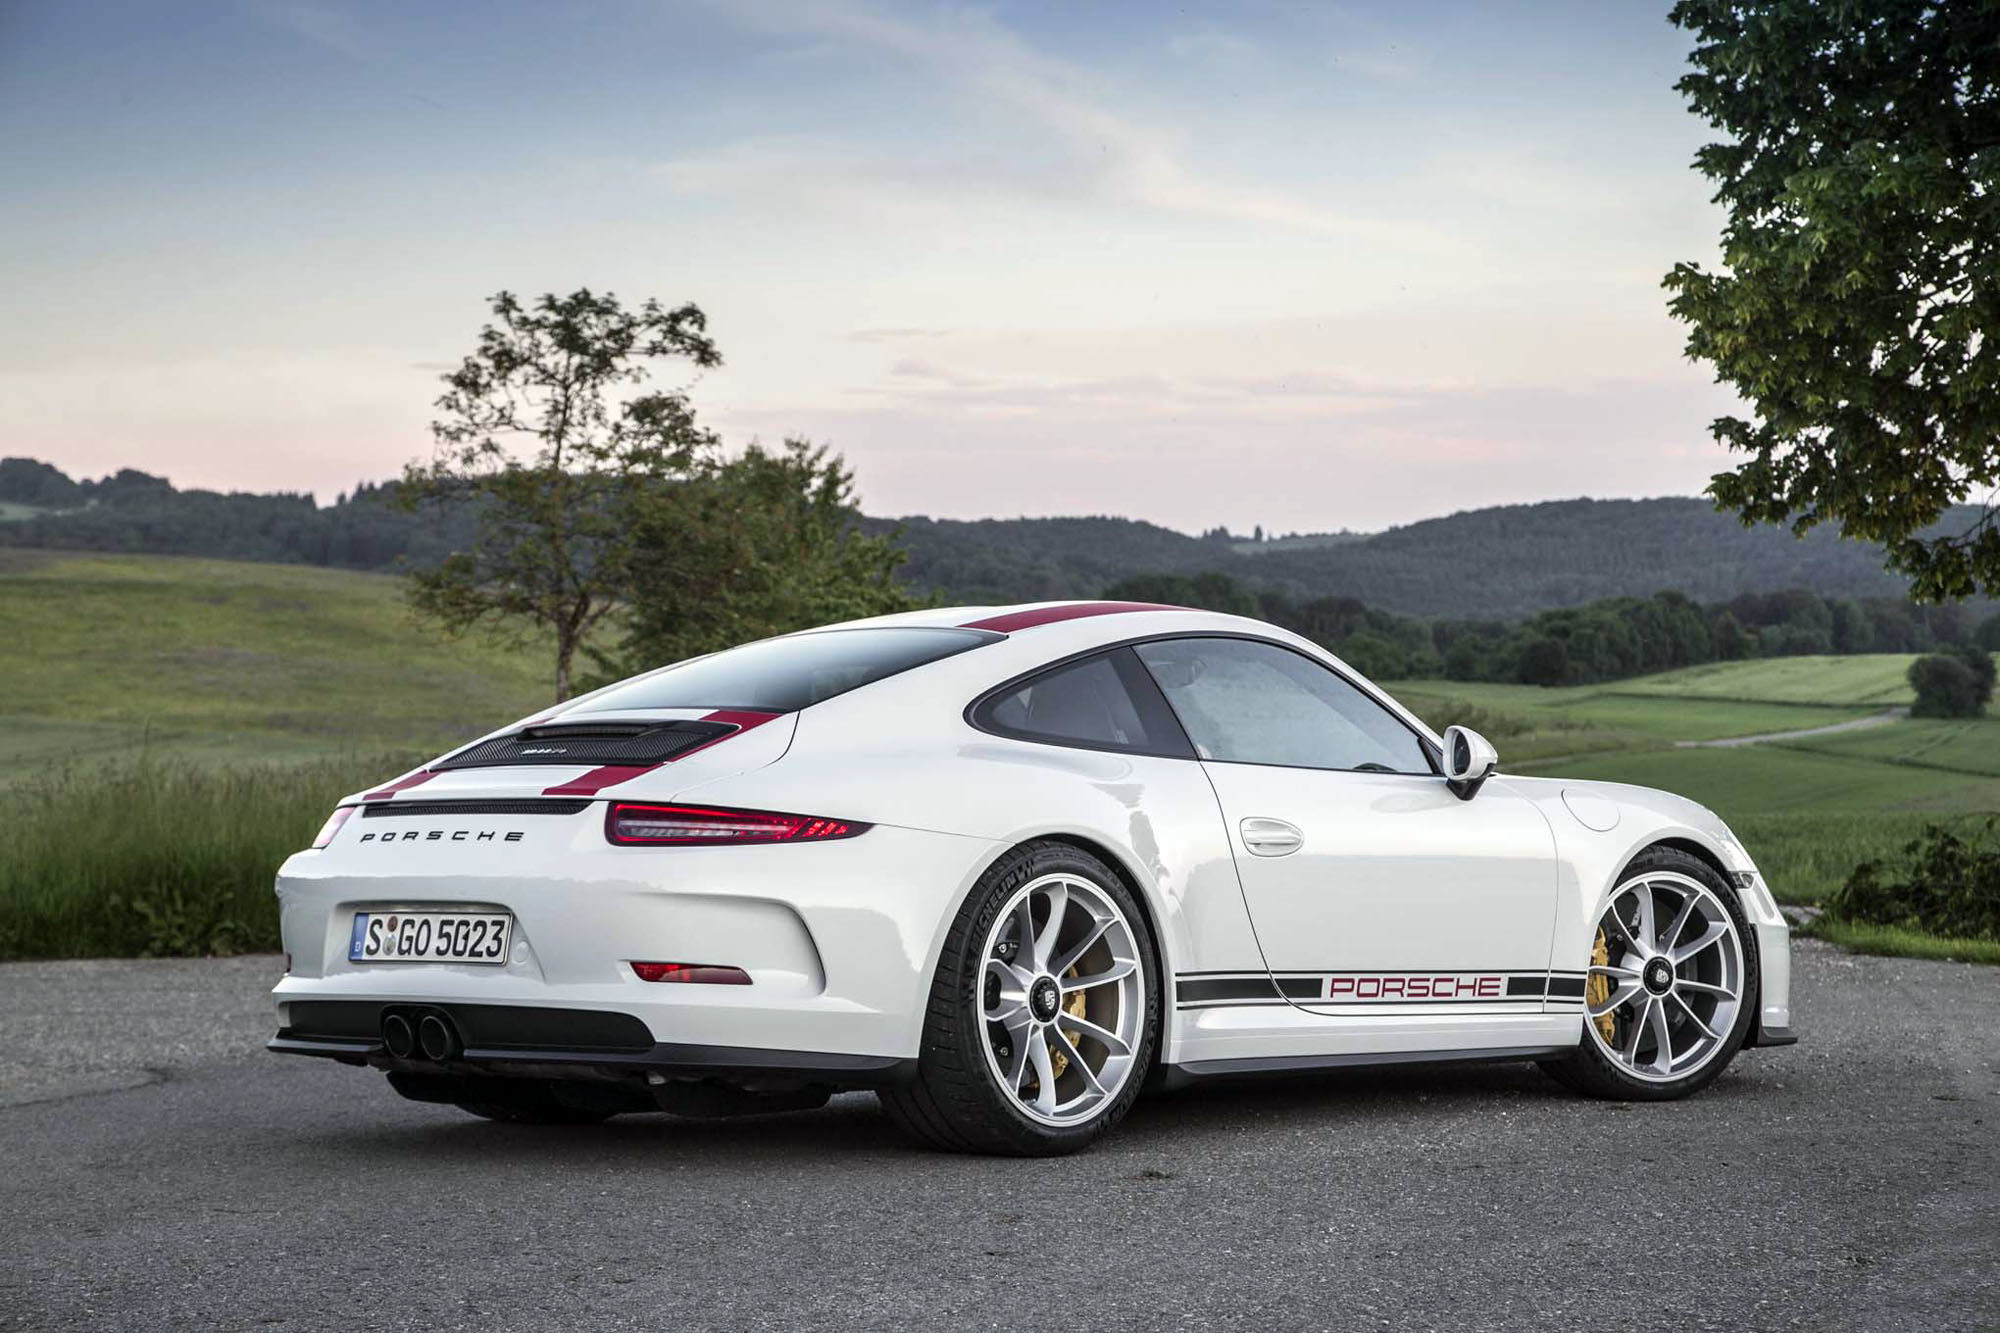 2016 Porsche 911 R Rear View HD Car Wallpapers 2000x1333